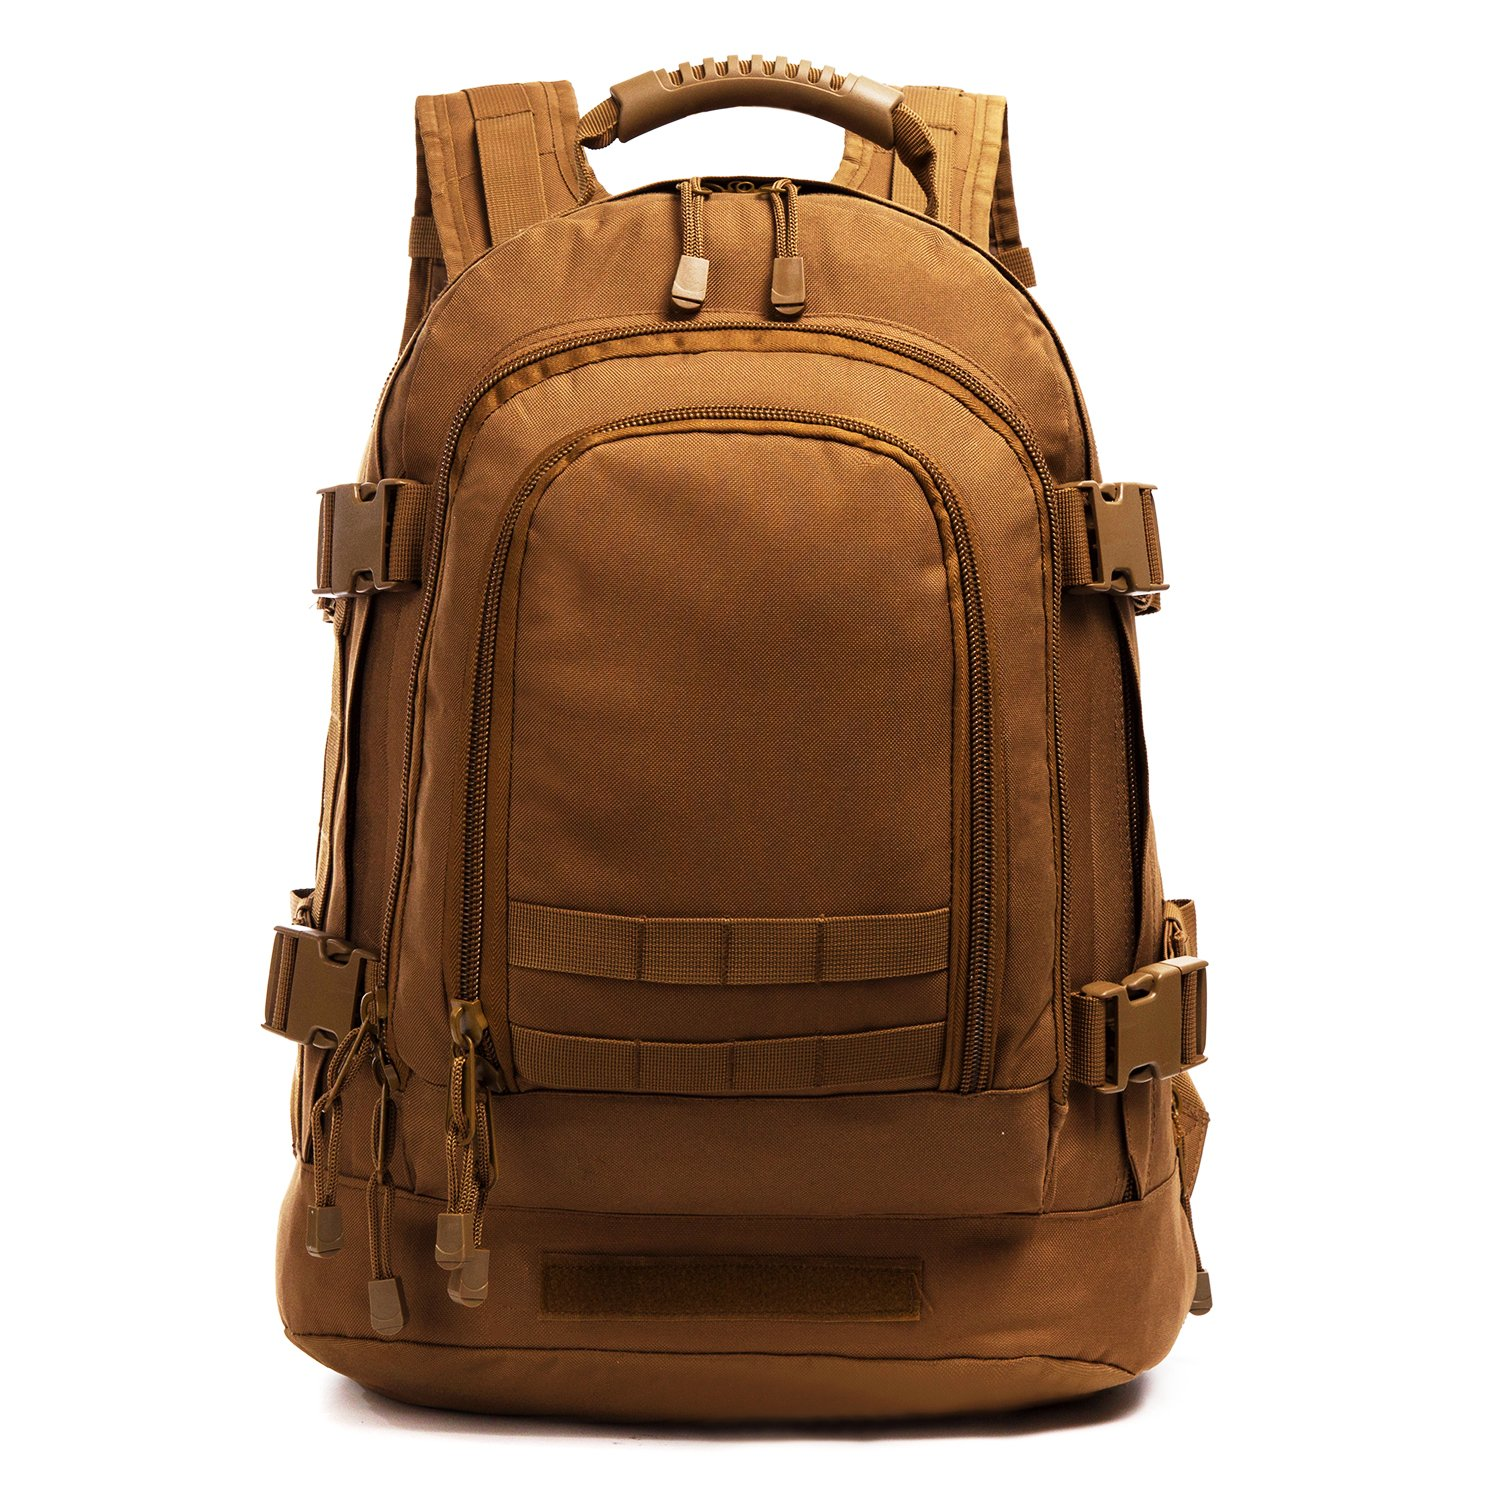 GreenCity Military Outdoor Backpack,Expandable Tactical Backpack,Travel Backpack,DIY System Up to 64L Loading Space for Travel,Camping,Hunting,Trekking and Hiking (Tan, Not with Belt)